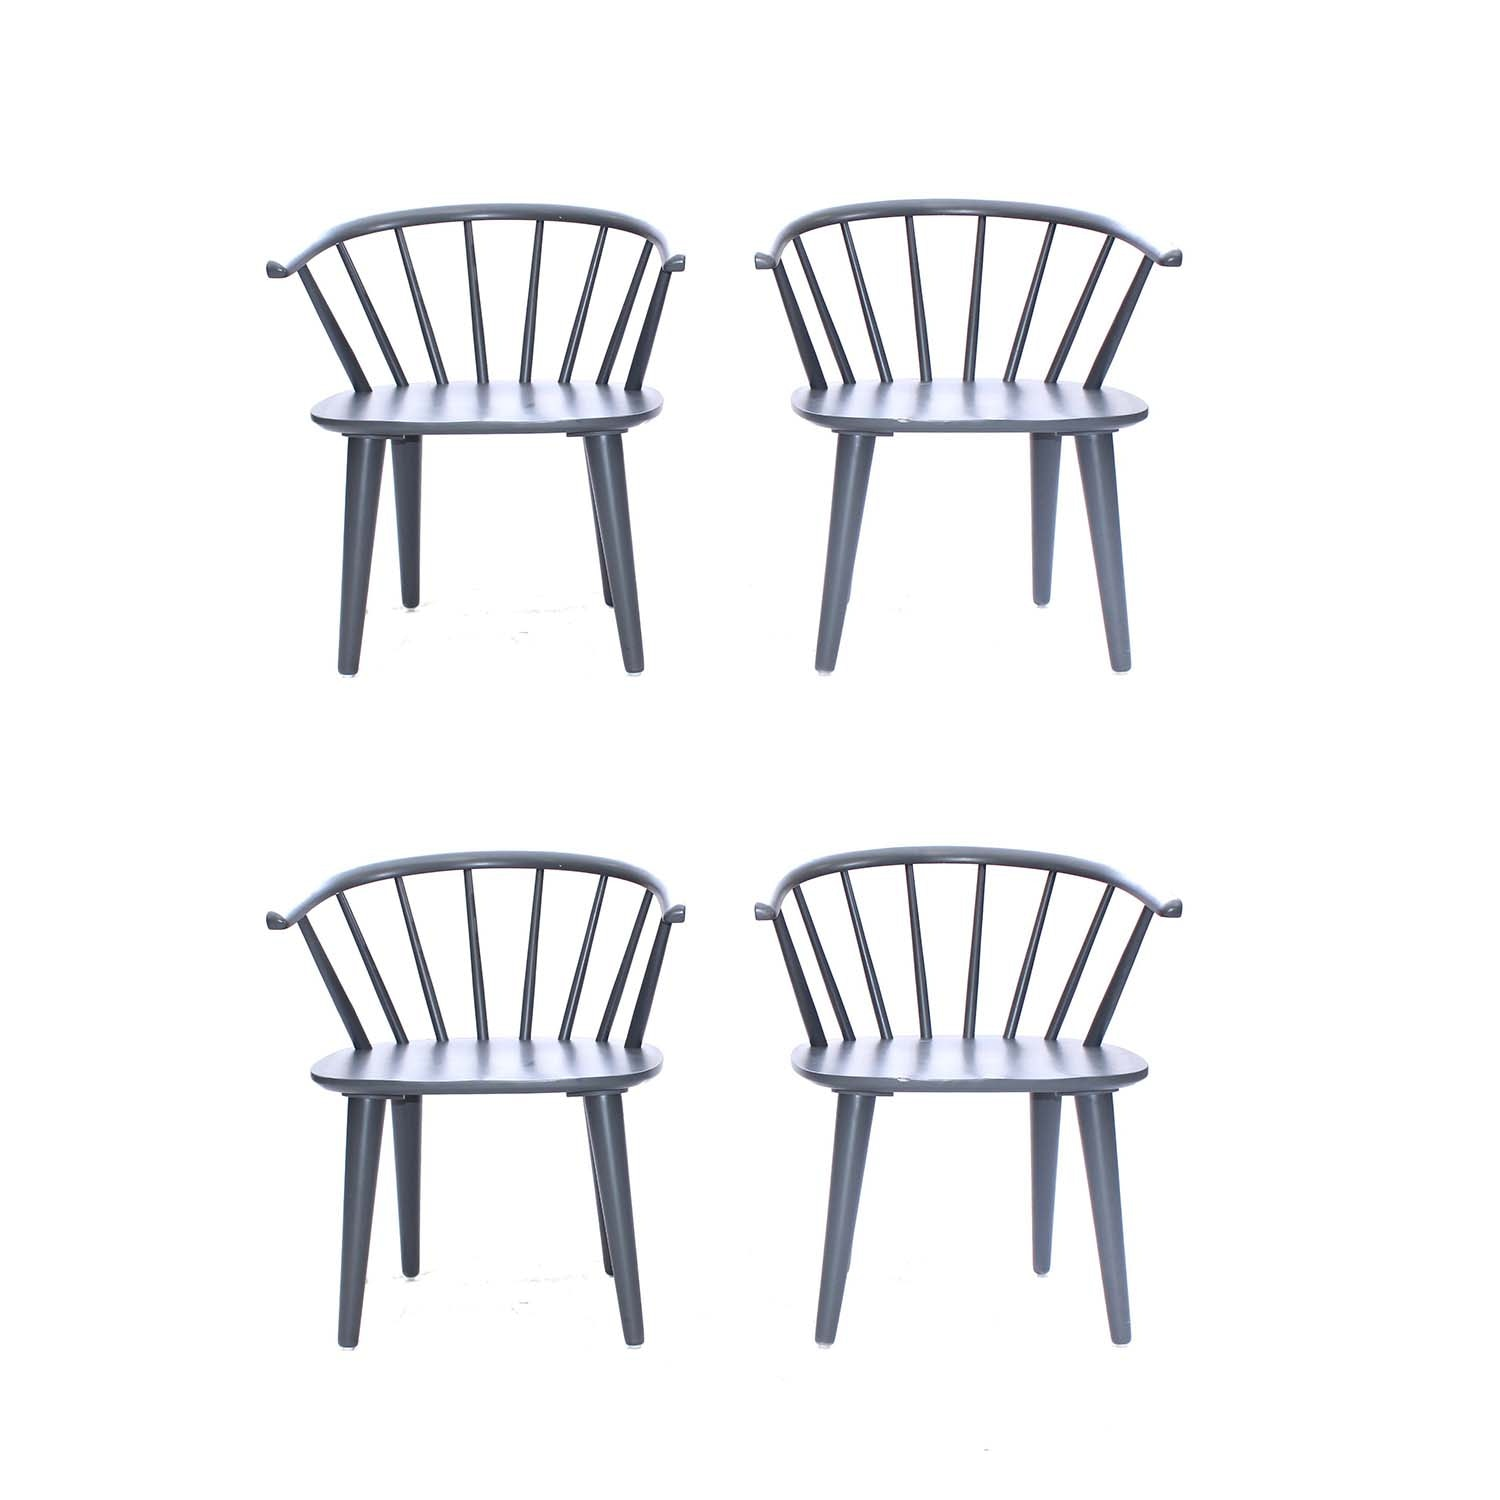 Four Windsor Style Gray Wooden Dining Chairs, Contemporary